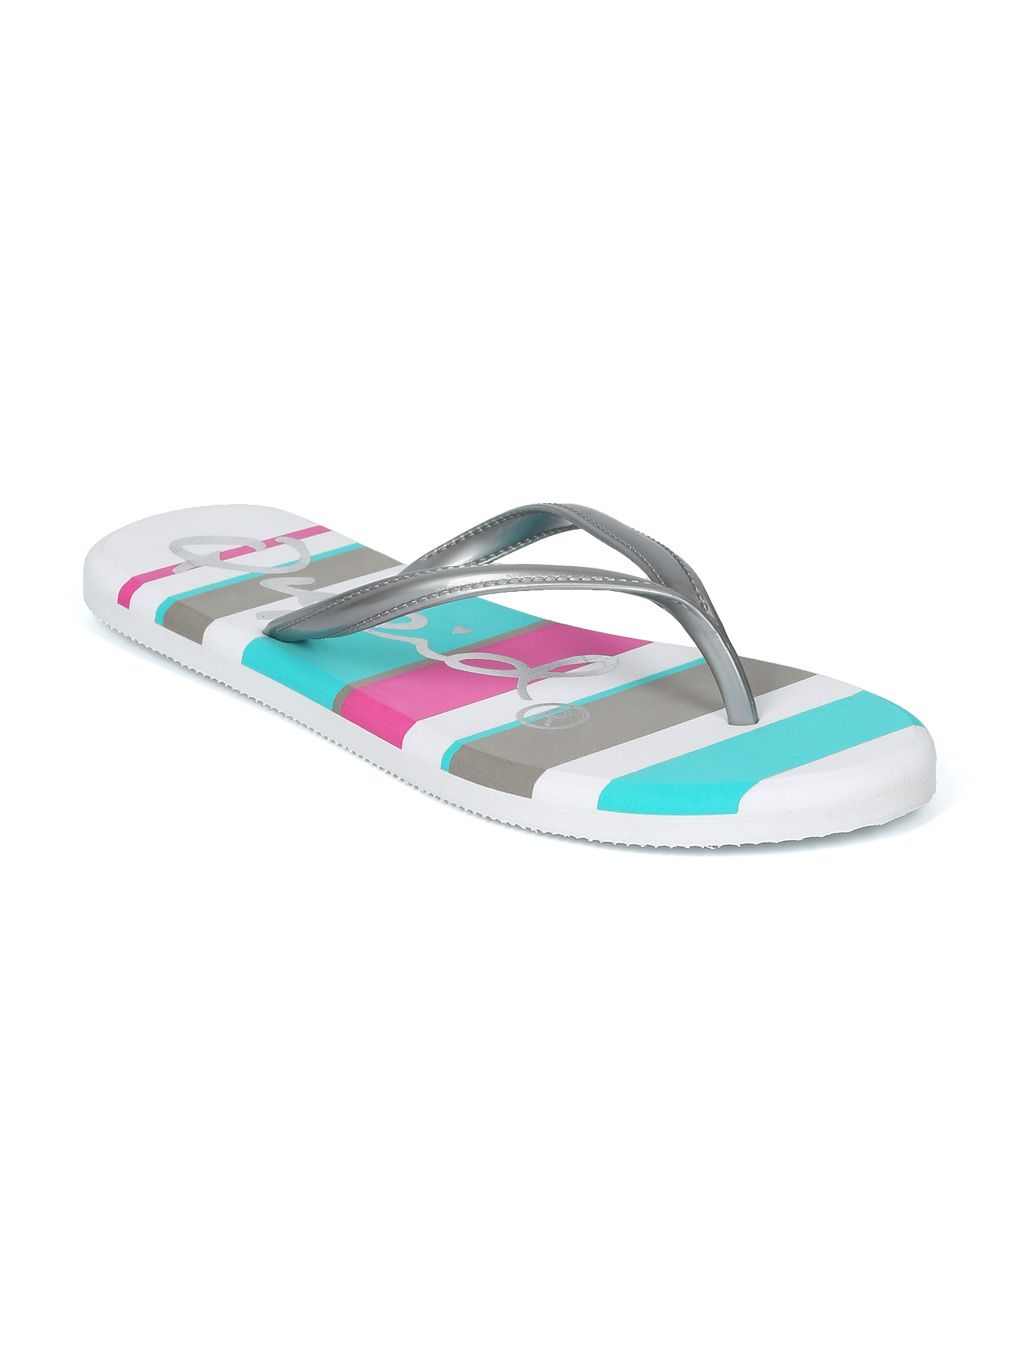 34b6b1e112a6 Shoes Women Metallic PVC Striped Beach Flip Flop